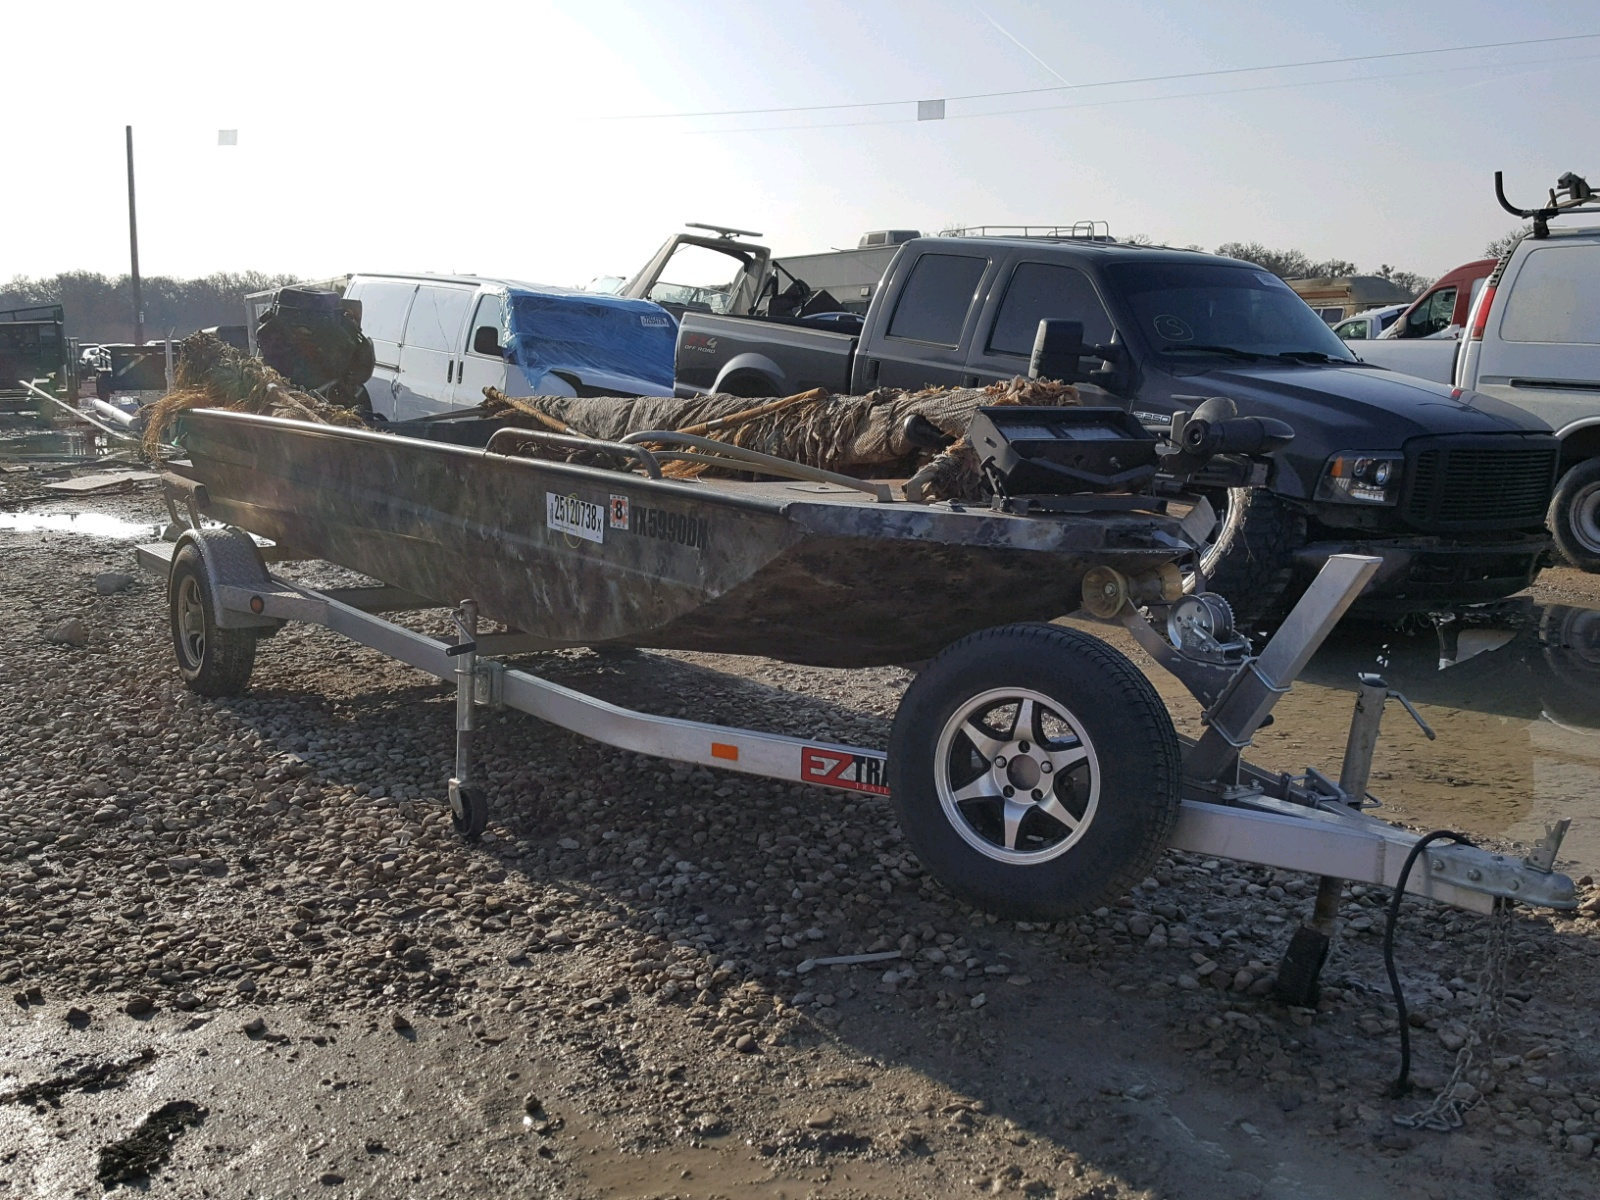 Salvage 2017 Cabin Trailer BOAT for sale